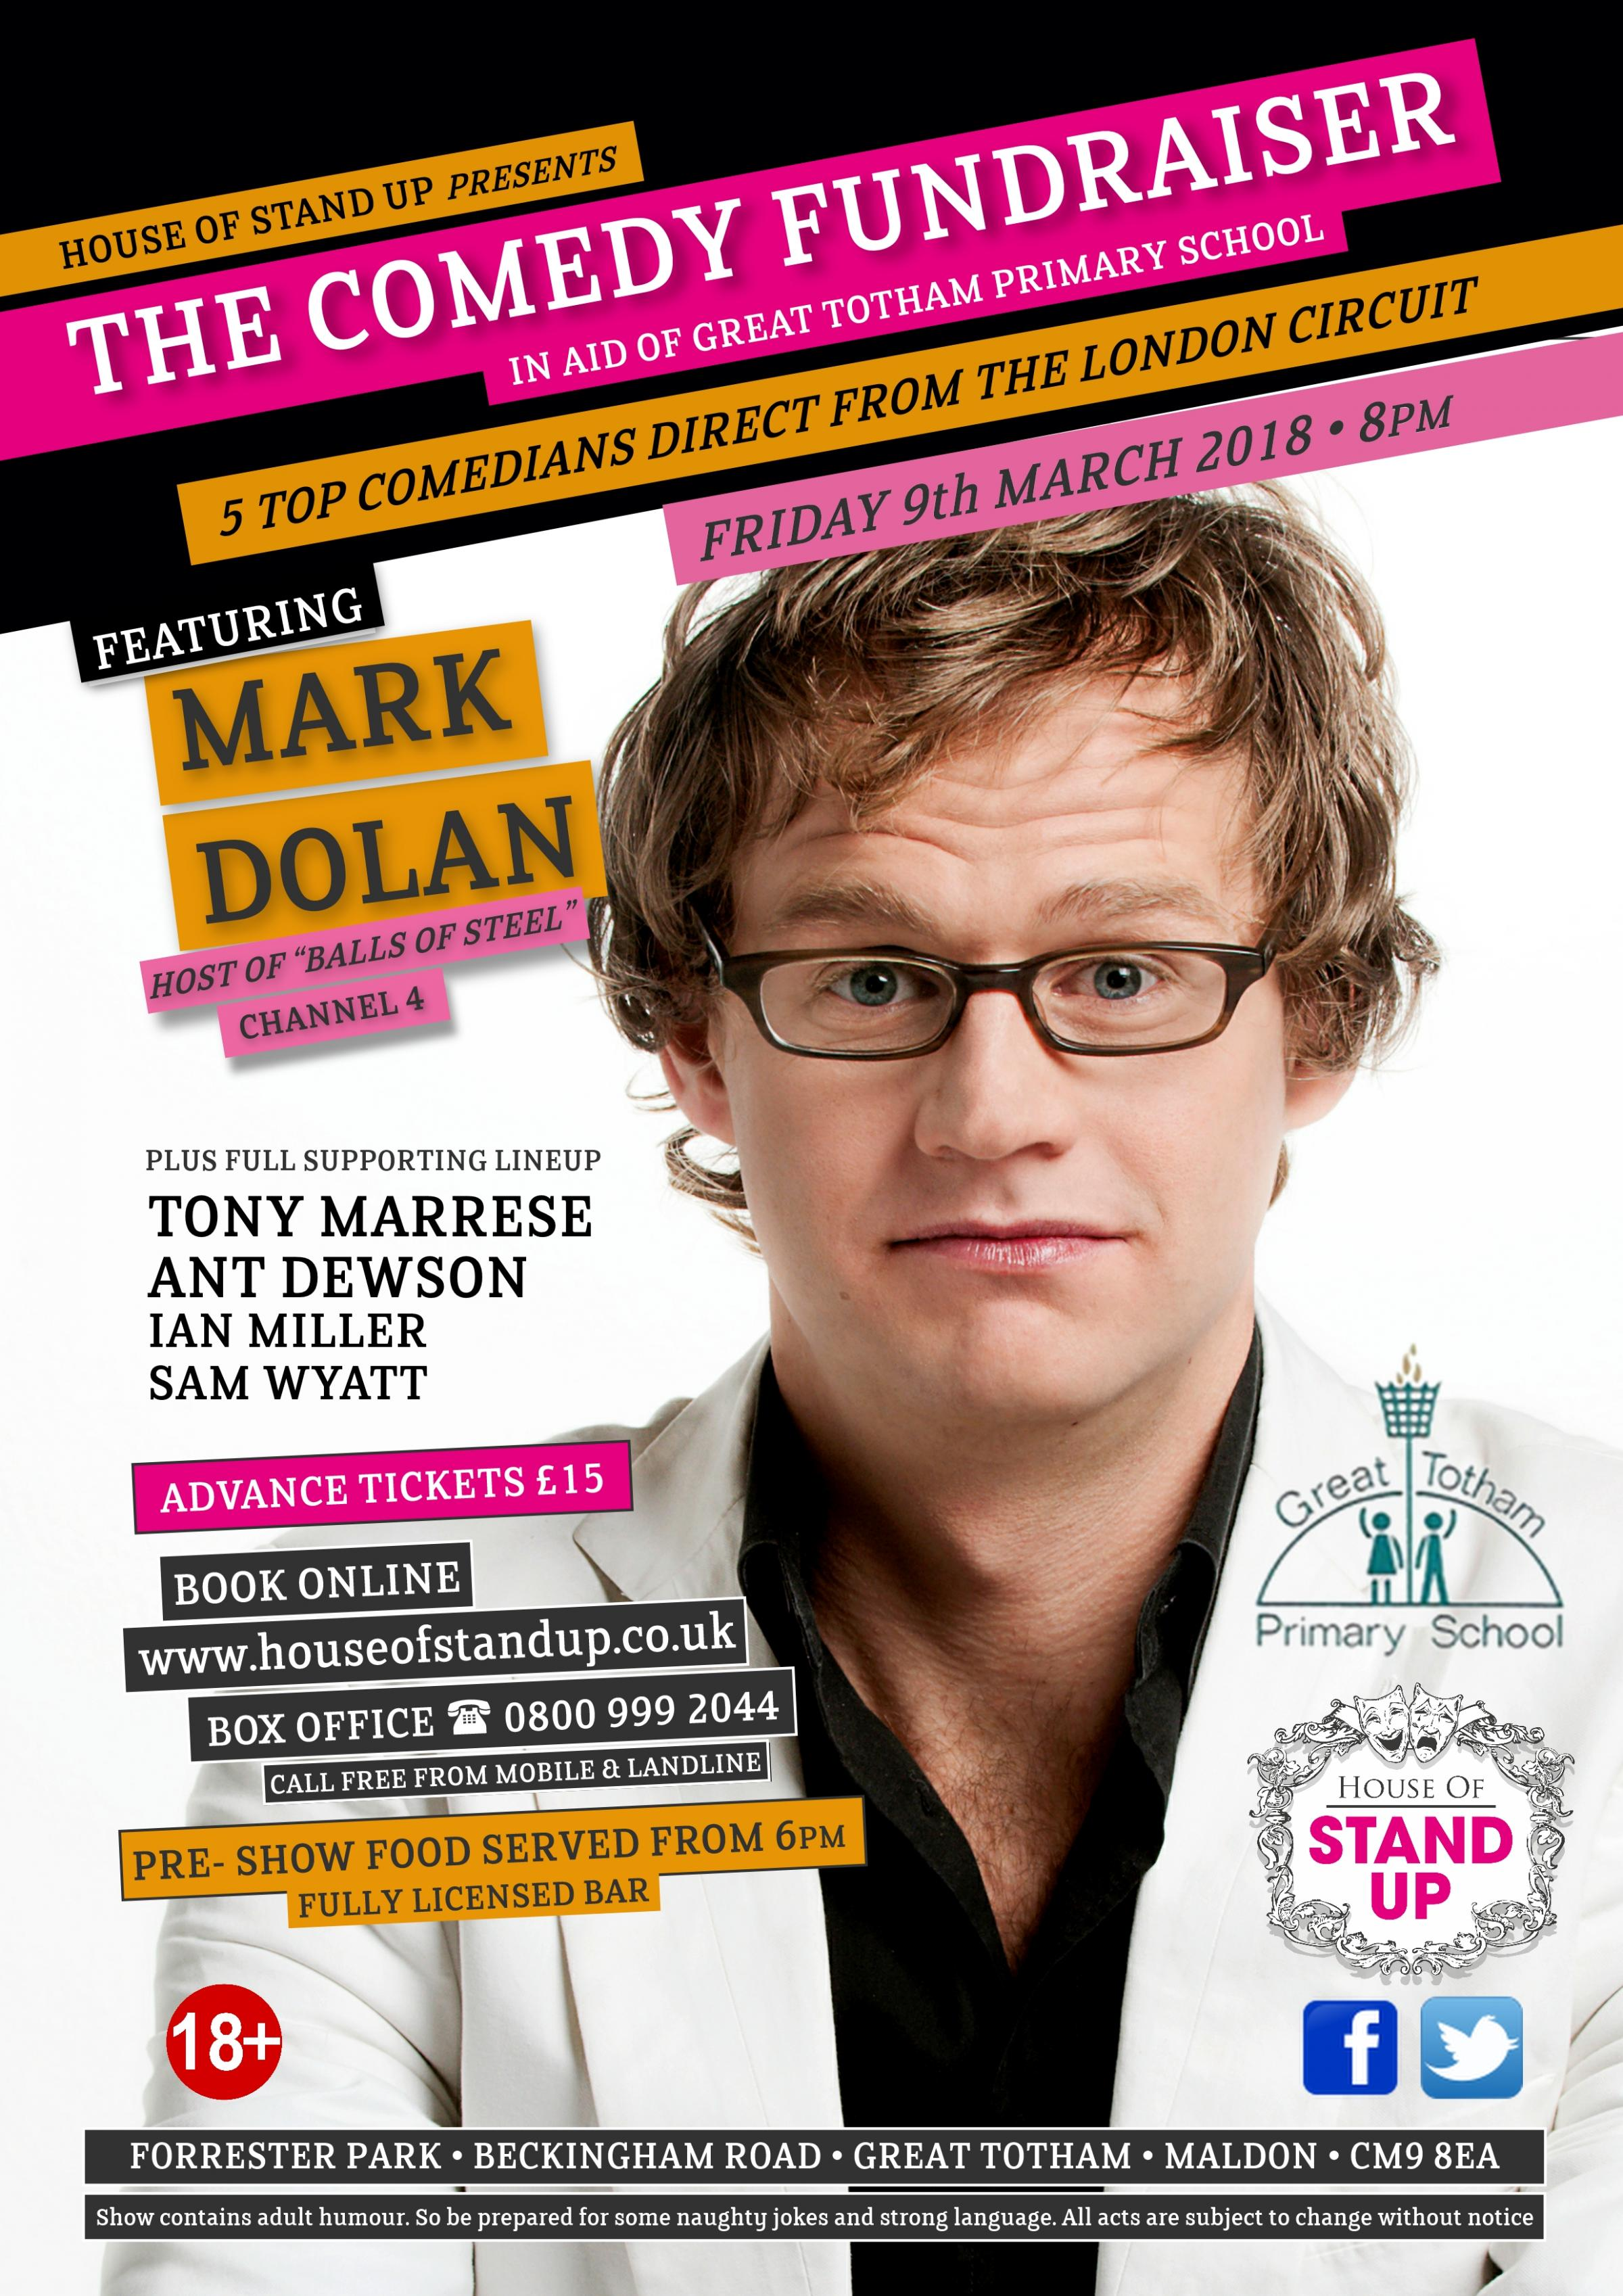 House of Stand Up Presents 'The Comedy Fundraiser'